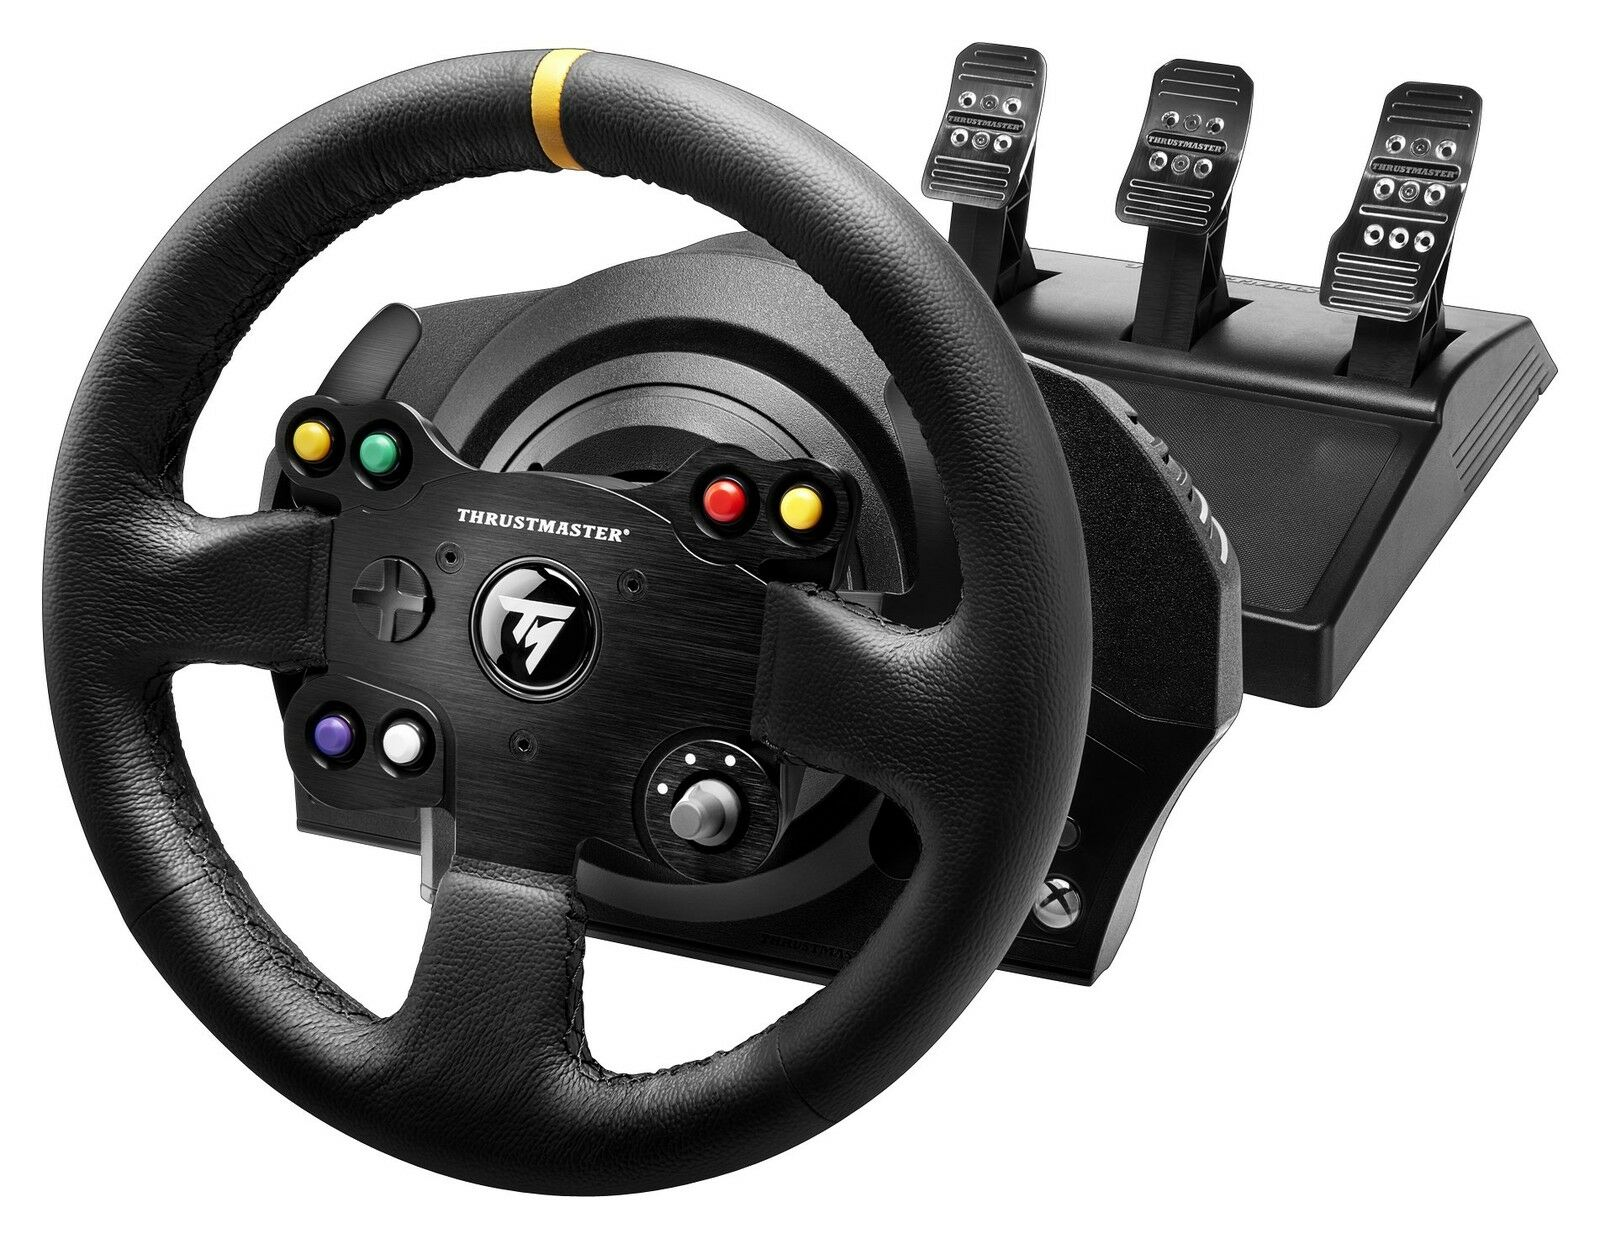 Best Steering Wheel for Xbox One: TX Racing Leather